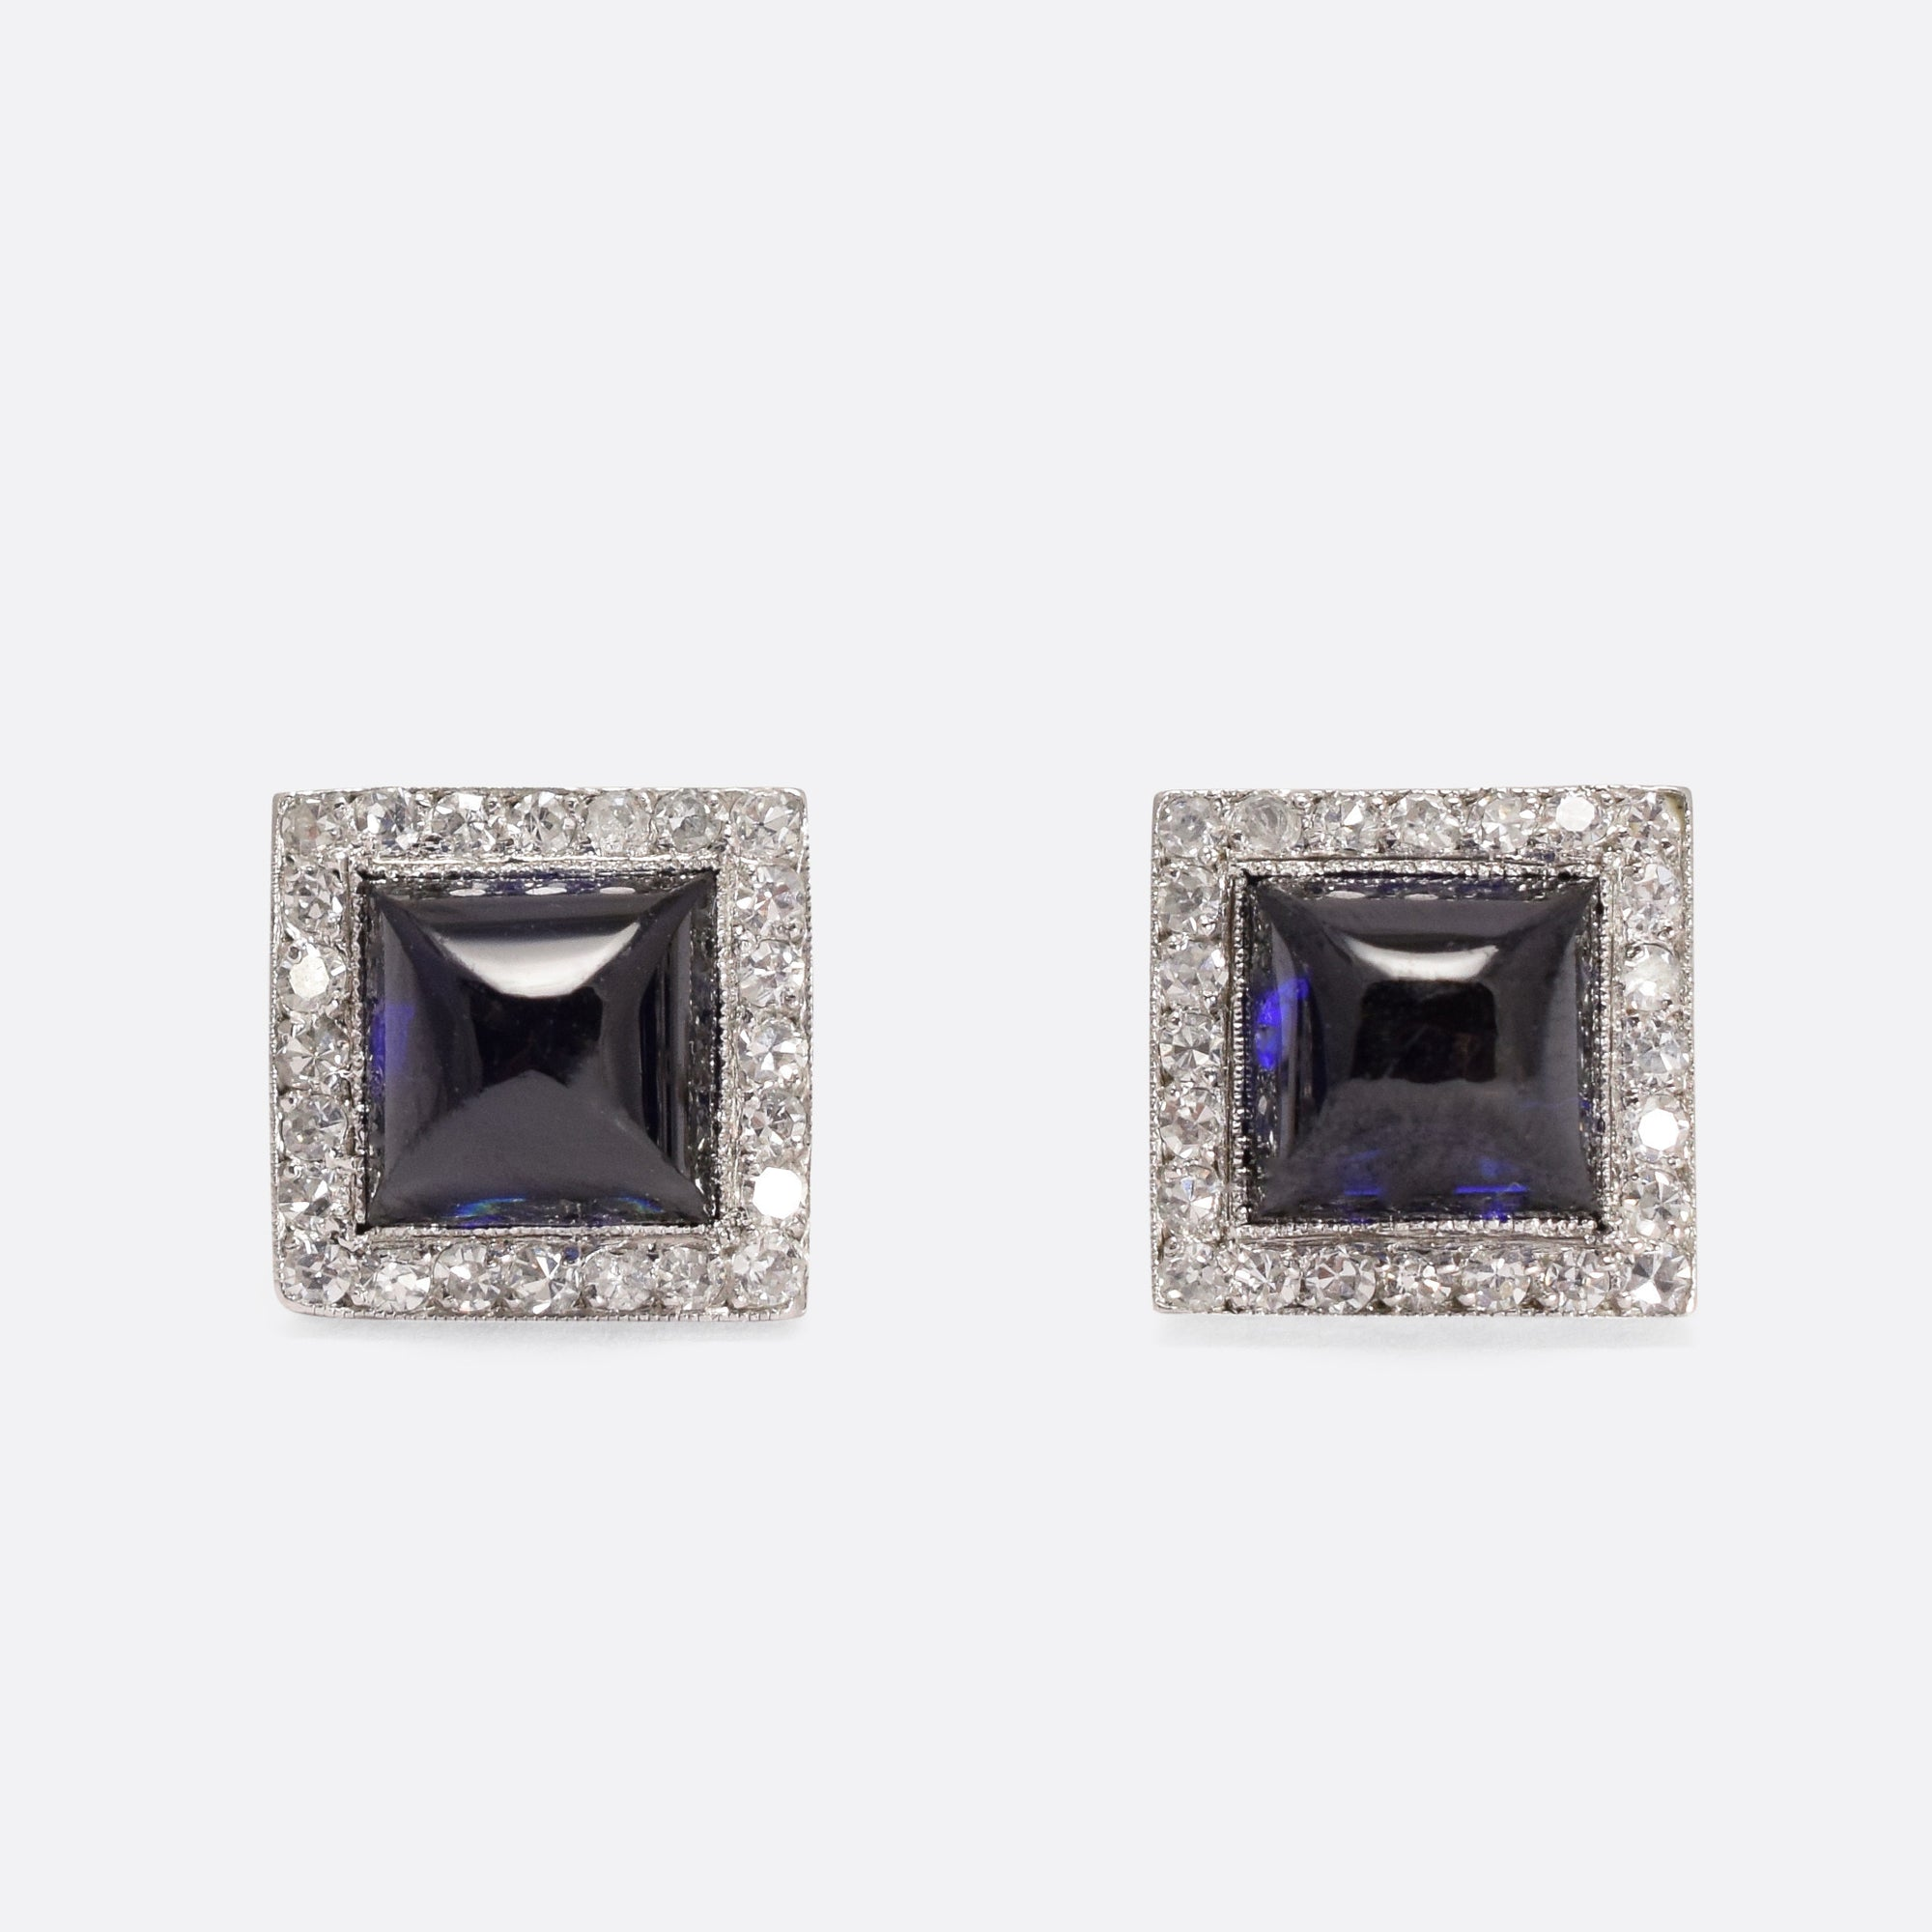 vintage marquise silver diamond stone cz baguette studs cut statement earrings halo cubic products inspired faux blue zirconia gussie stud sapphire cluster